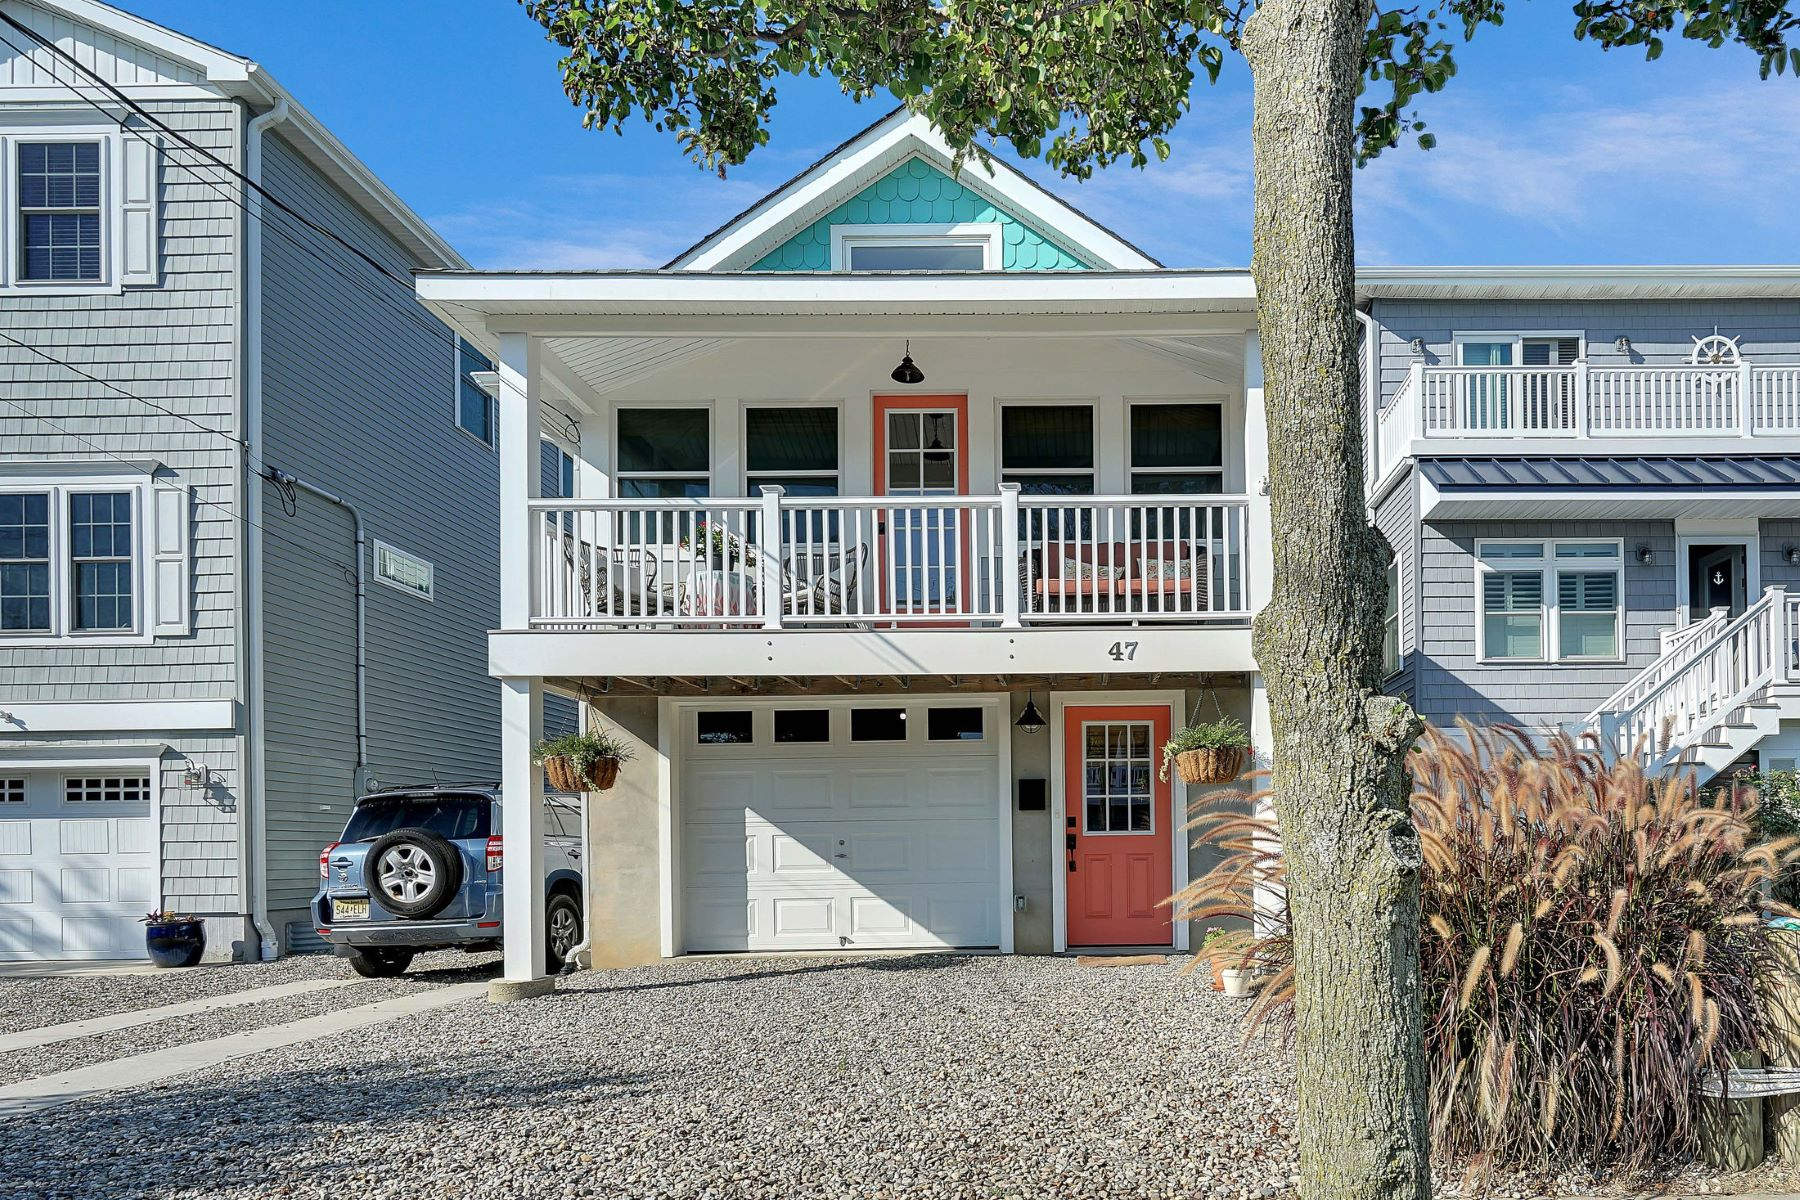 Single Family Homes for Sale at Beach Home in Manasquan 47 Ocean Avenue, Manasquan, New Jersey 08736 United States